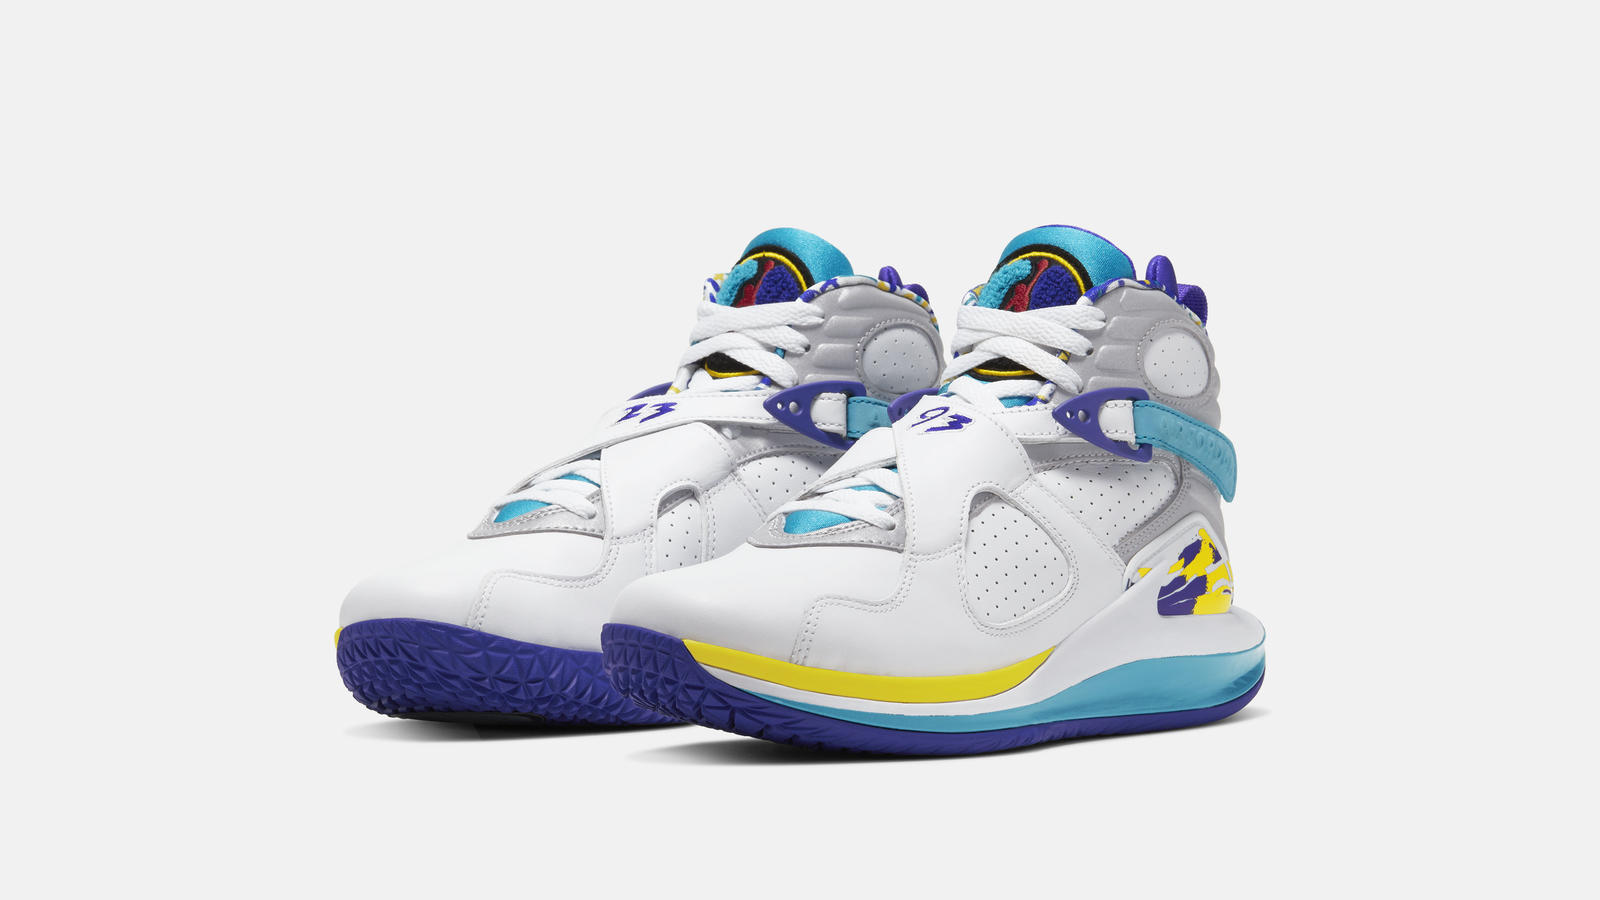 NikeCourt Air Zoom Zero x Air Jordan 8 Aqua Official Images and Release Date 1